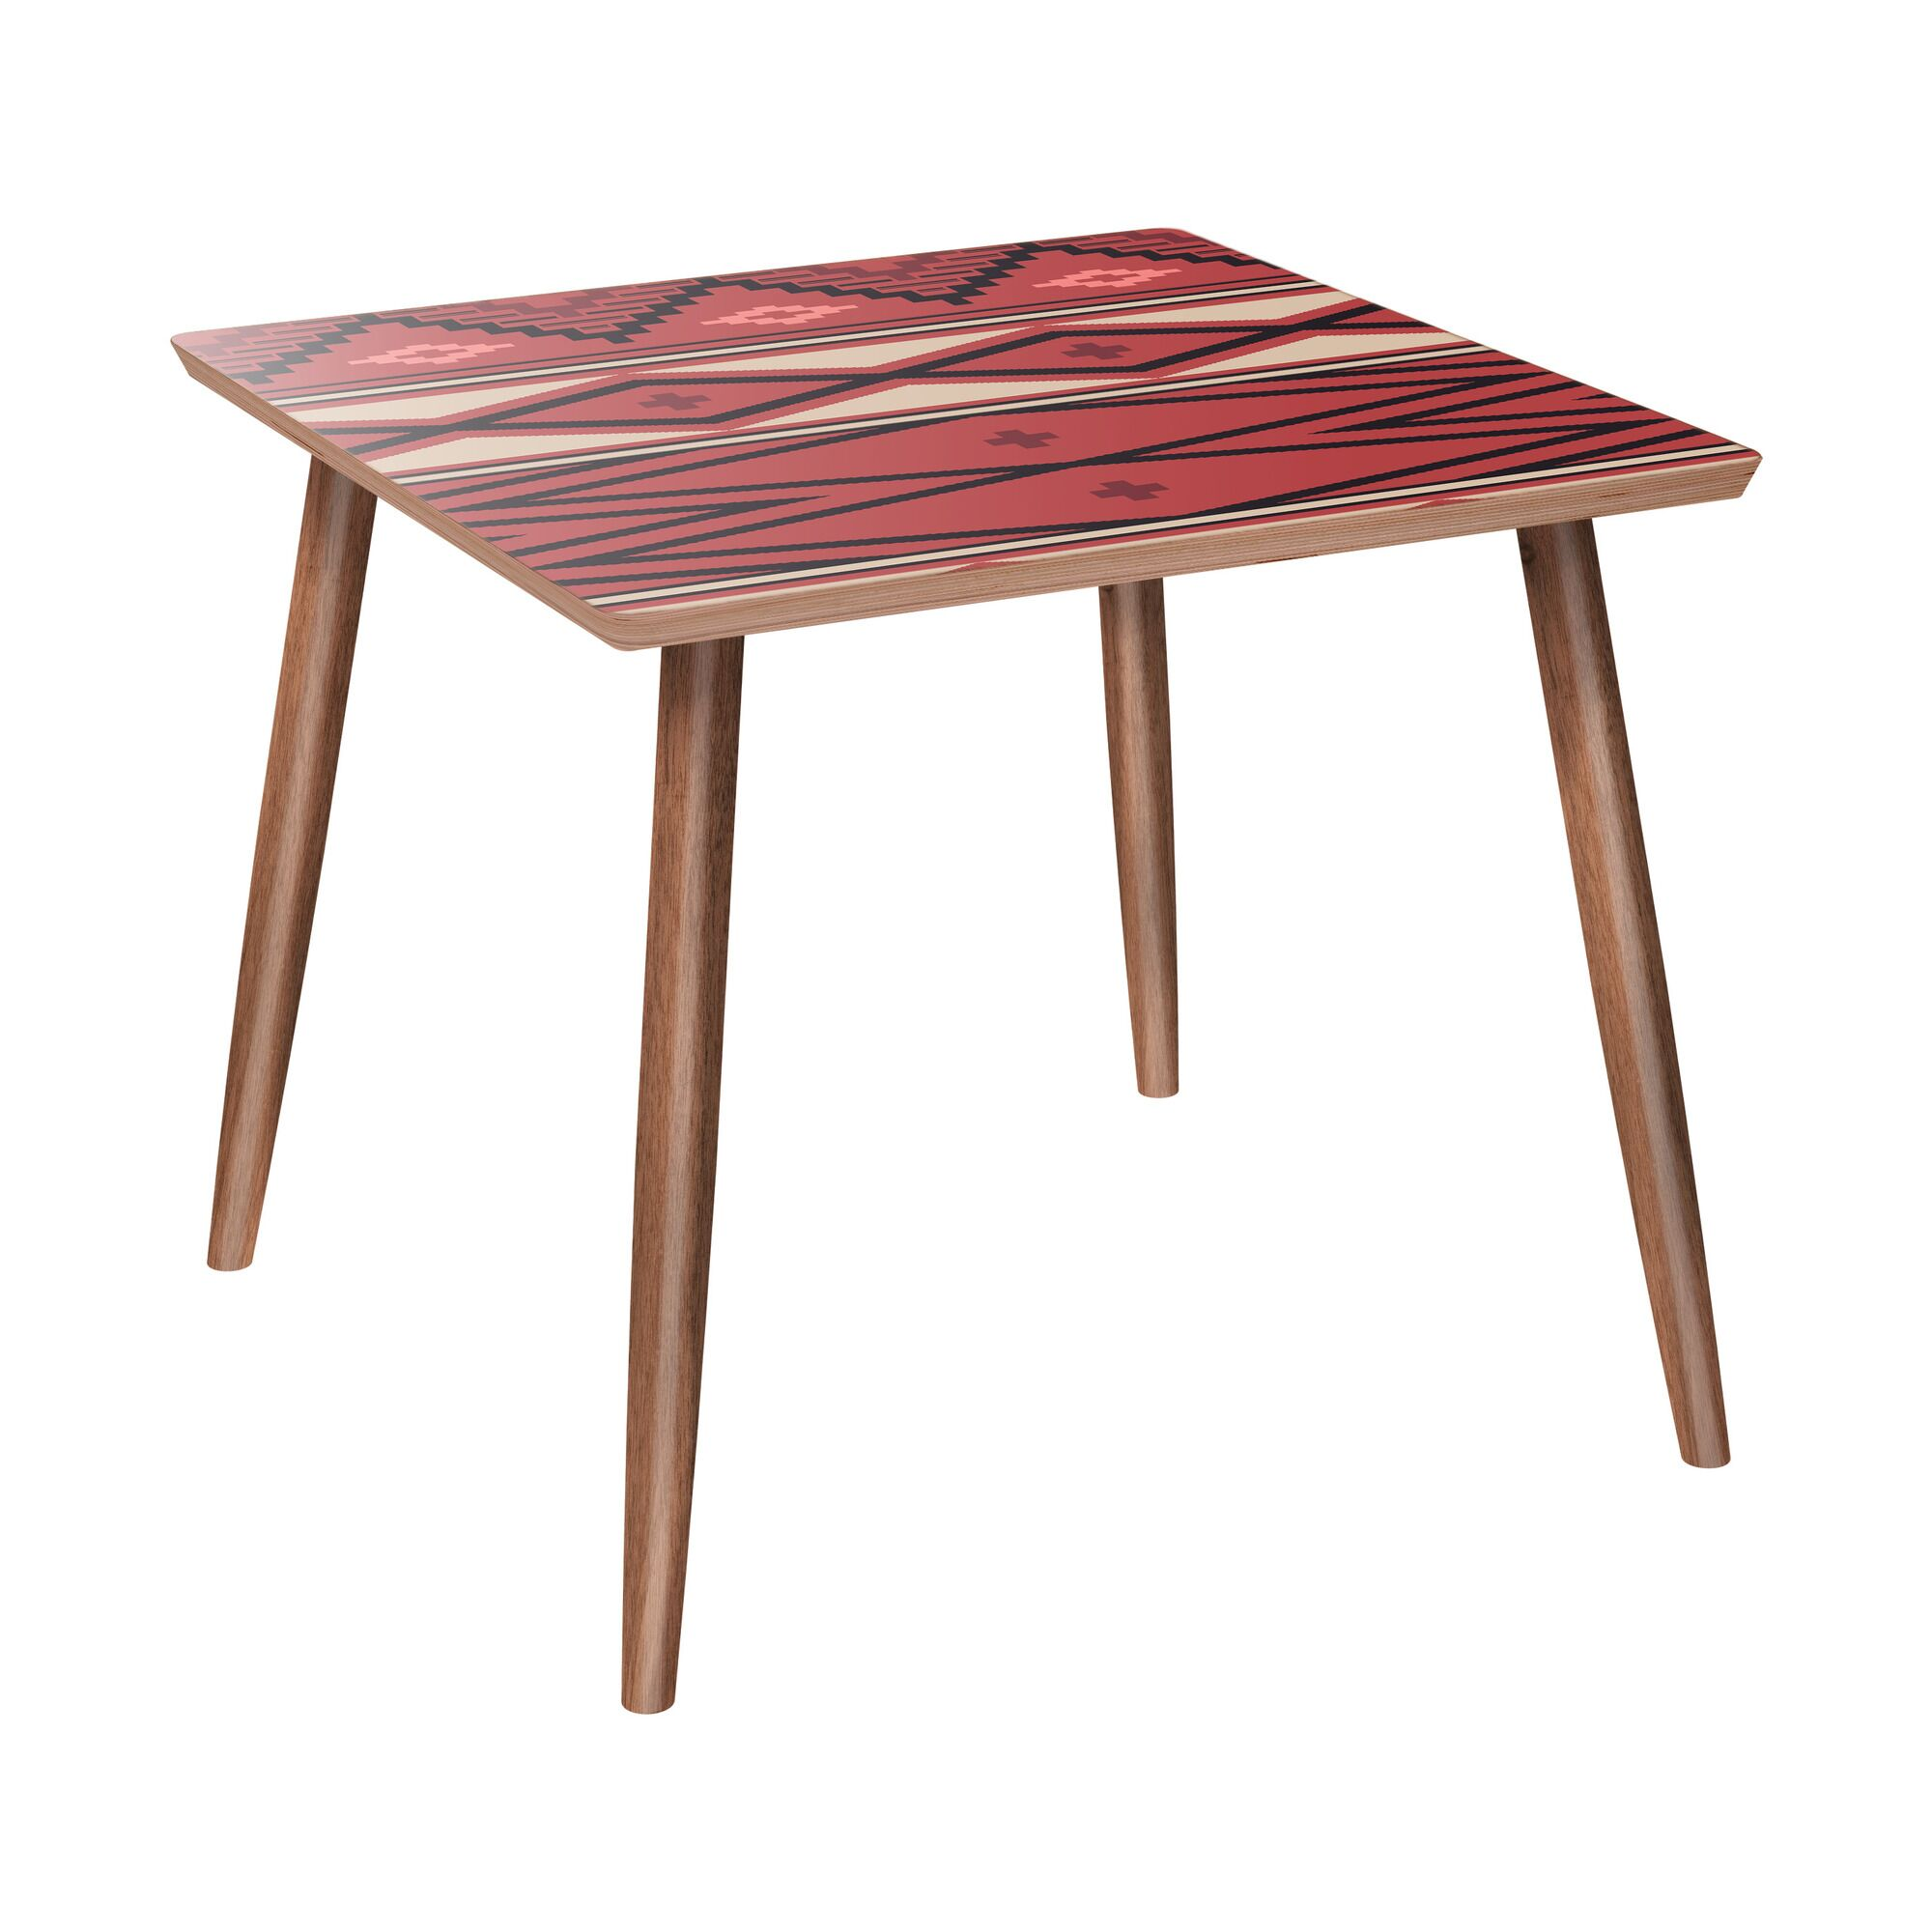 Upper Strode End Table Table Base Color: Walnut, Table Top Color: Red